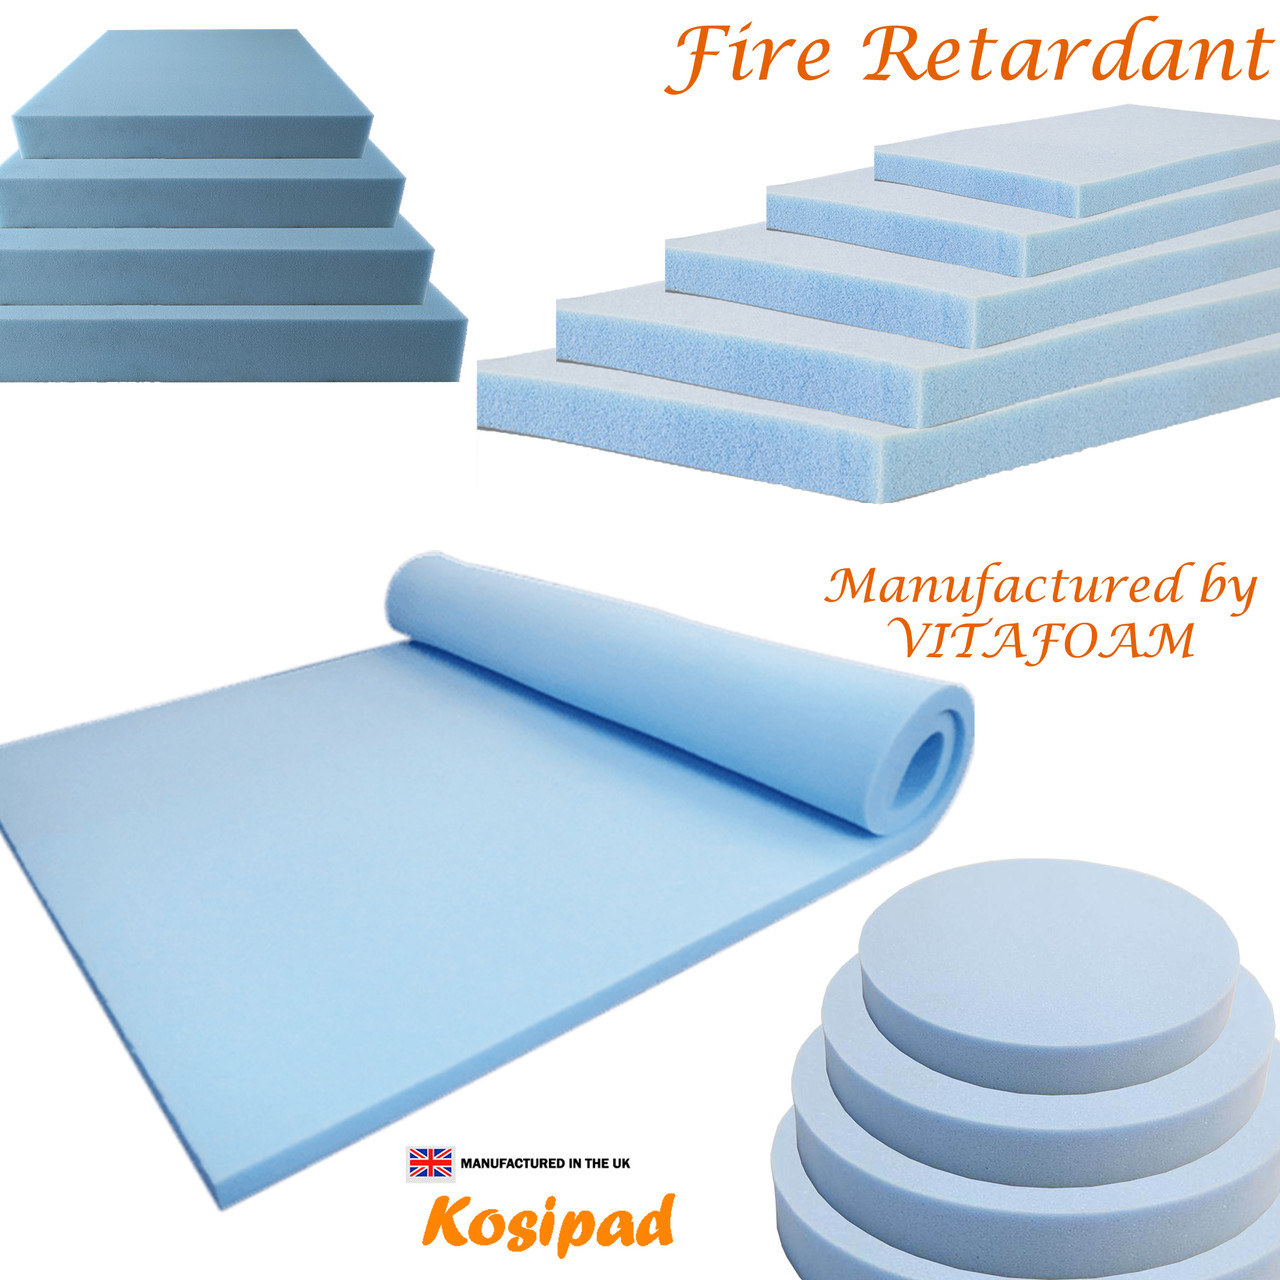 Custom Cut  foam pads for your  Upholstery, Cushion Pads, Seating, Sofa's, Patio Furniture